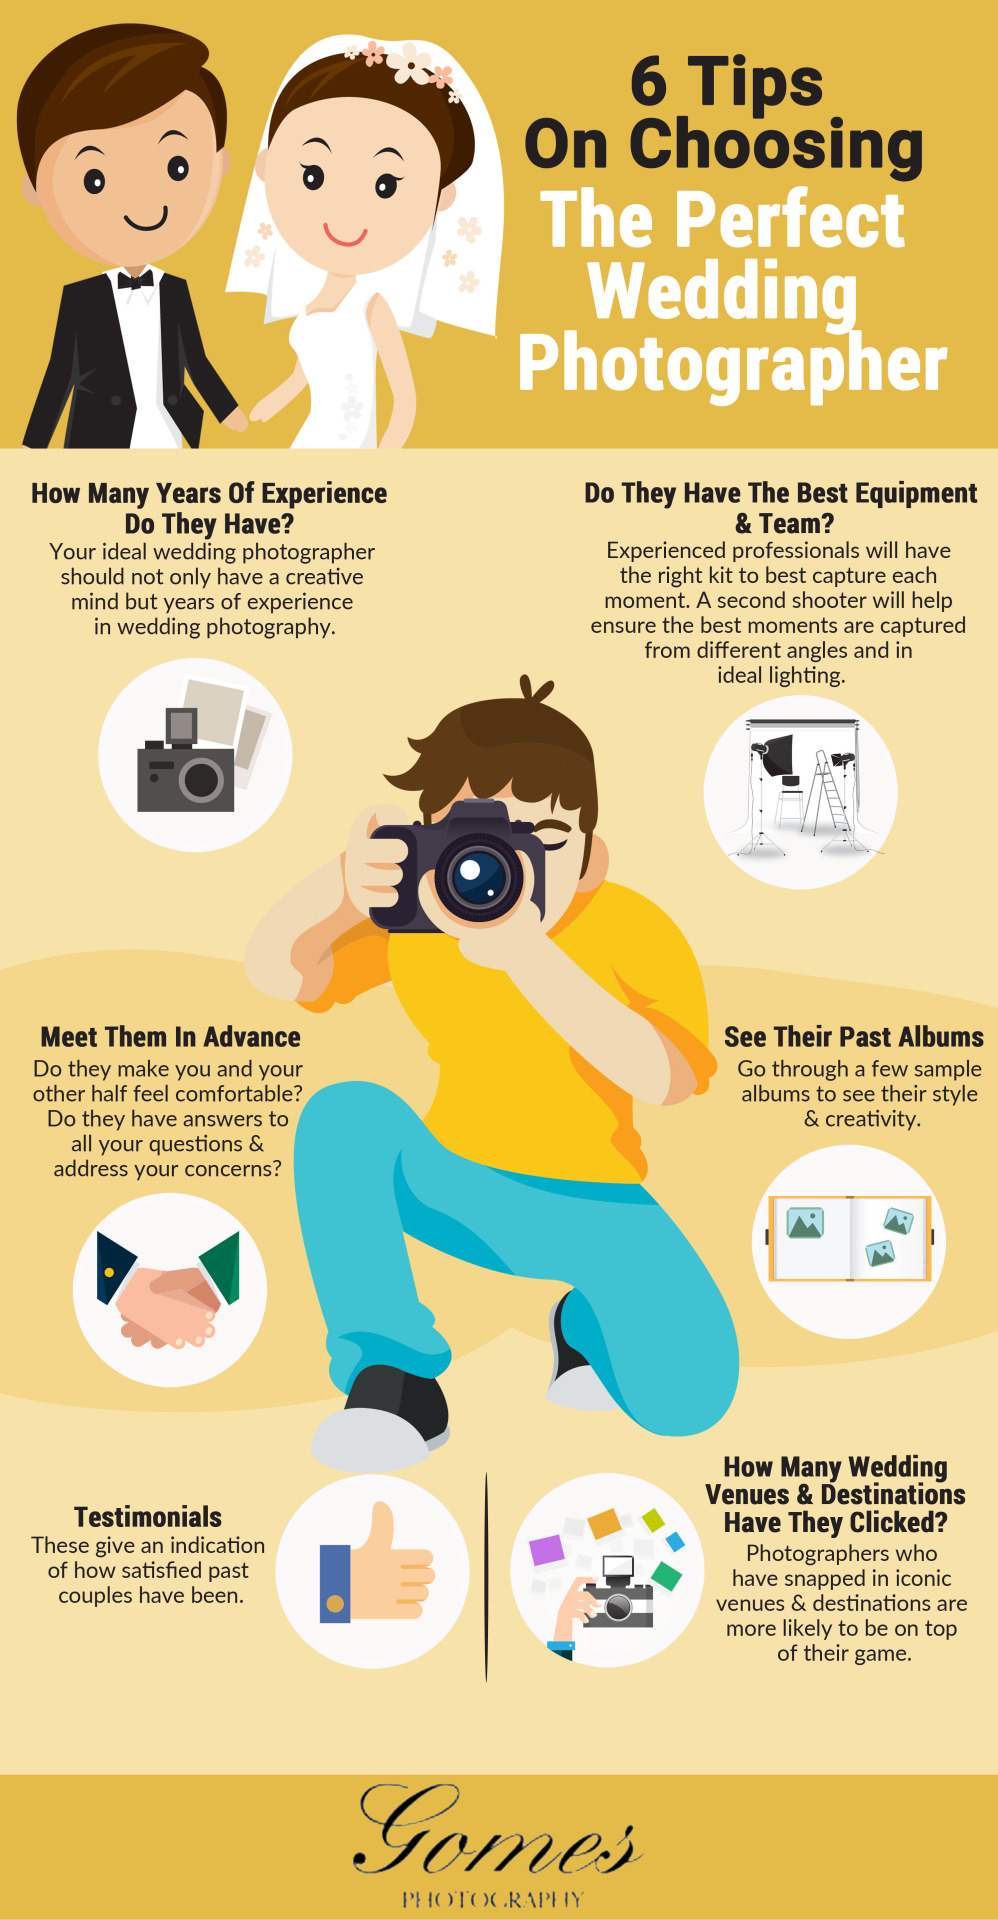 tips-choosing-perfect-wedding-photographer-infographic-plaza